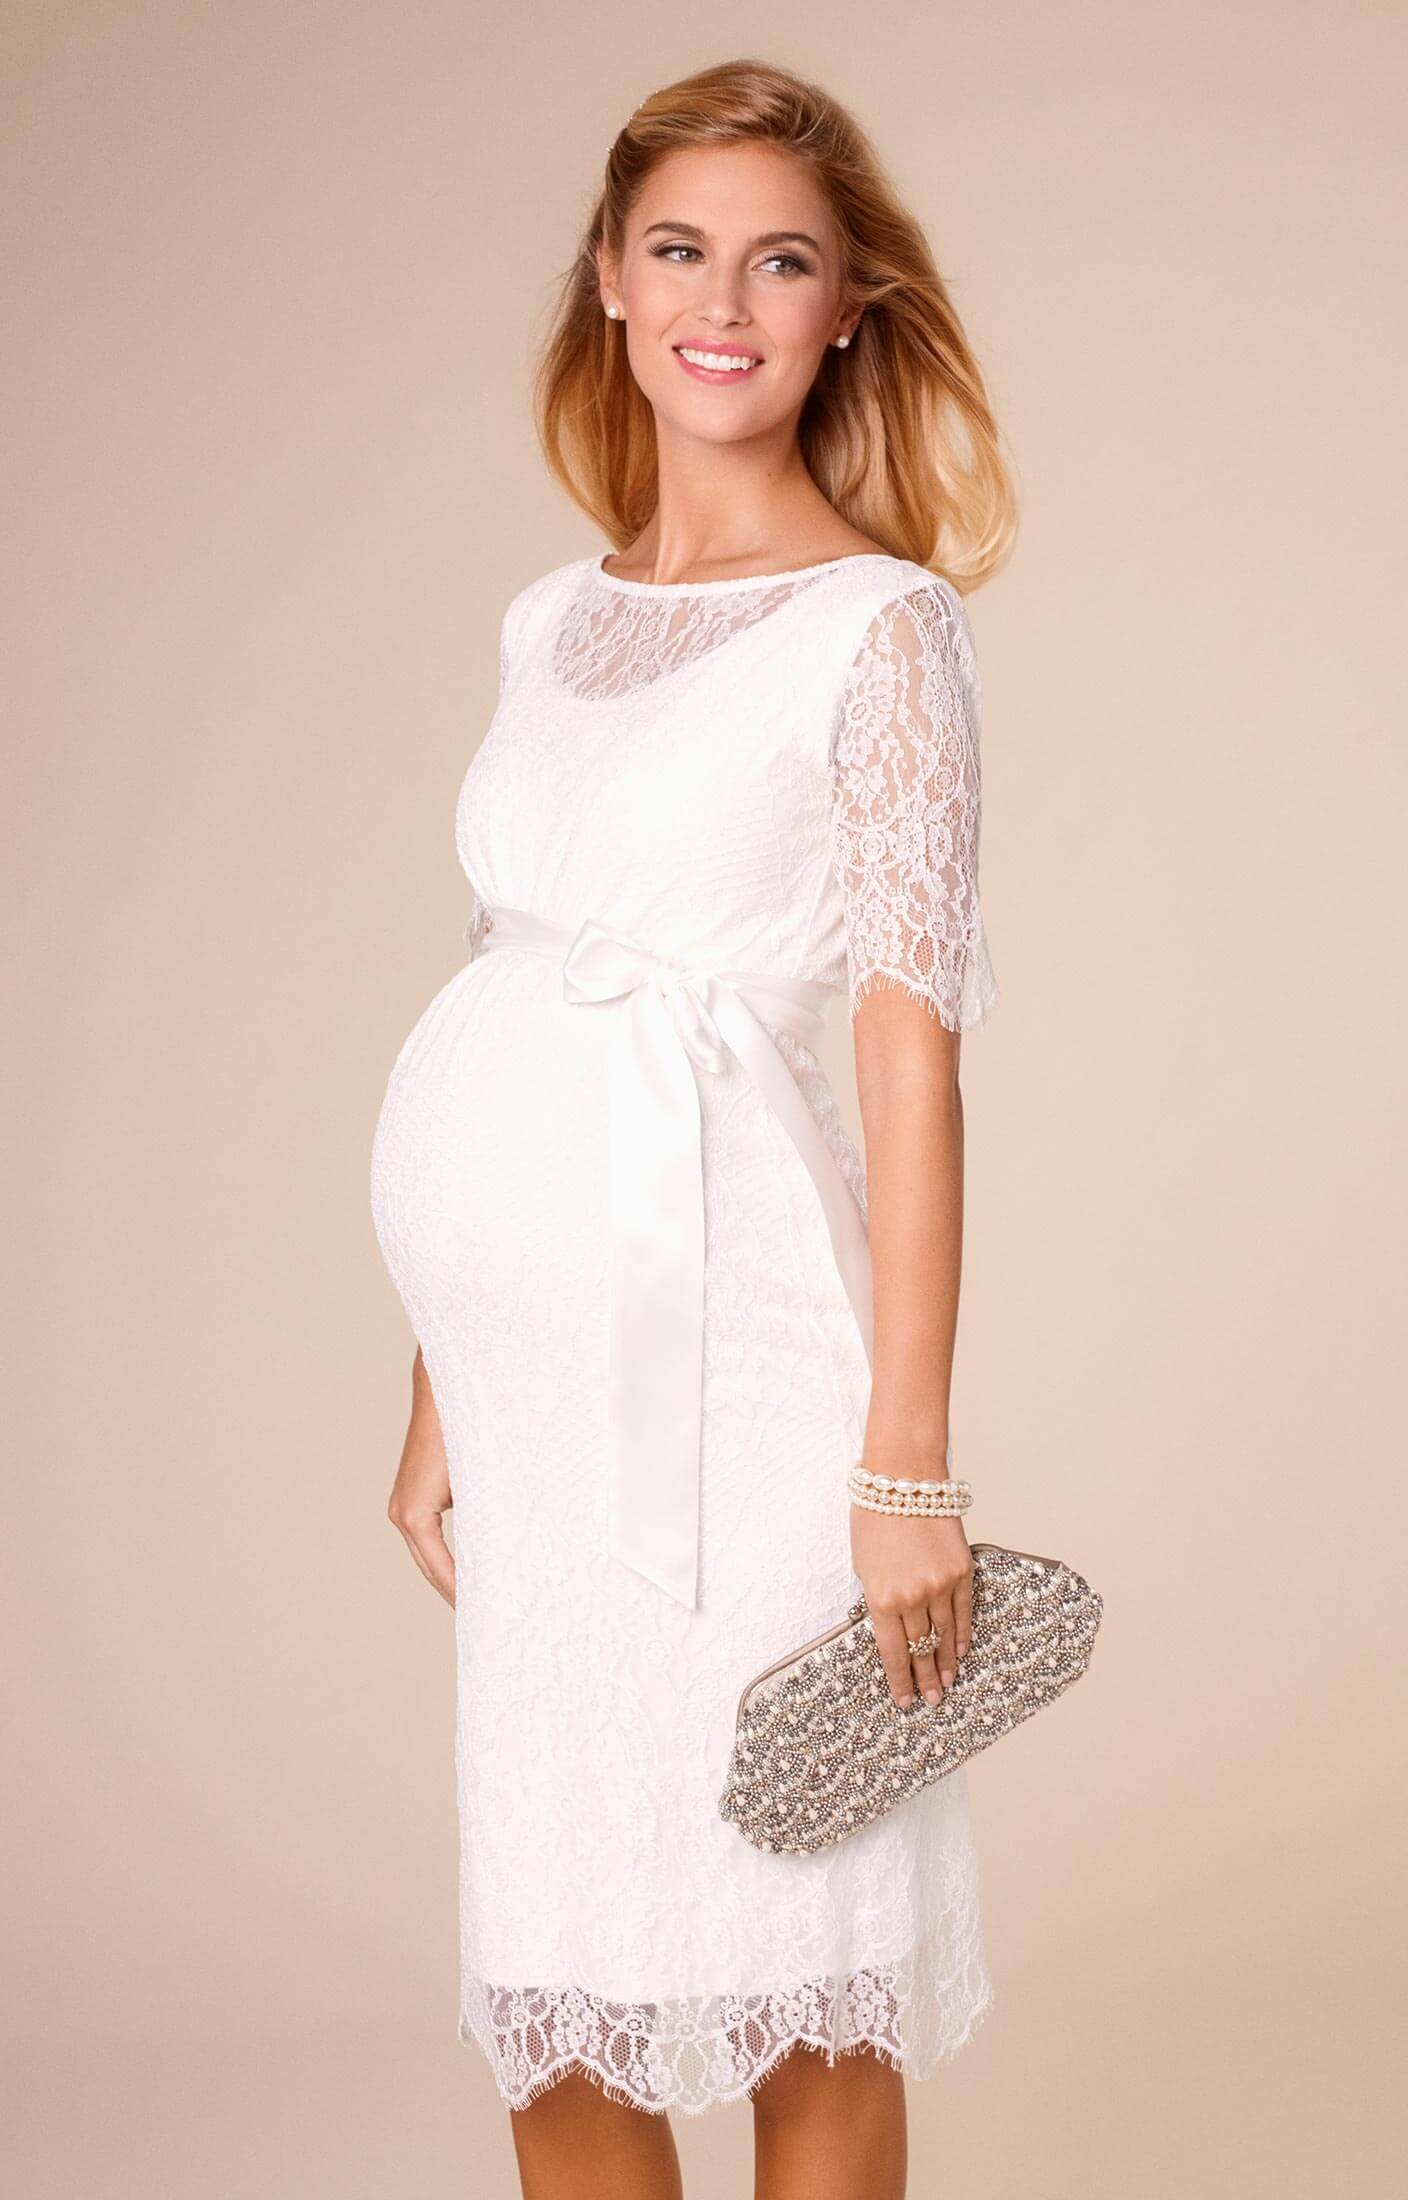 Starla maternity wedding dress short ivory maternity for Short ivory wedding dress